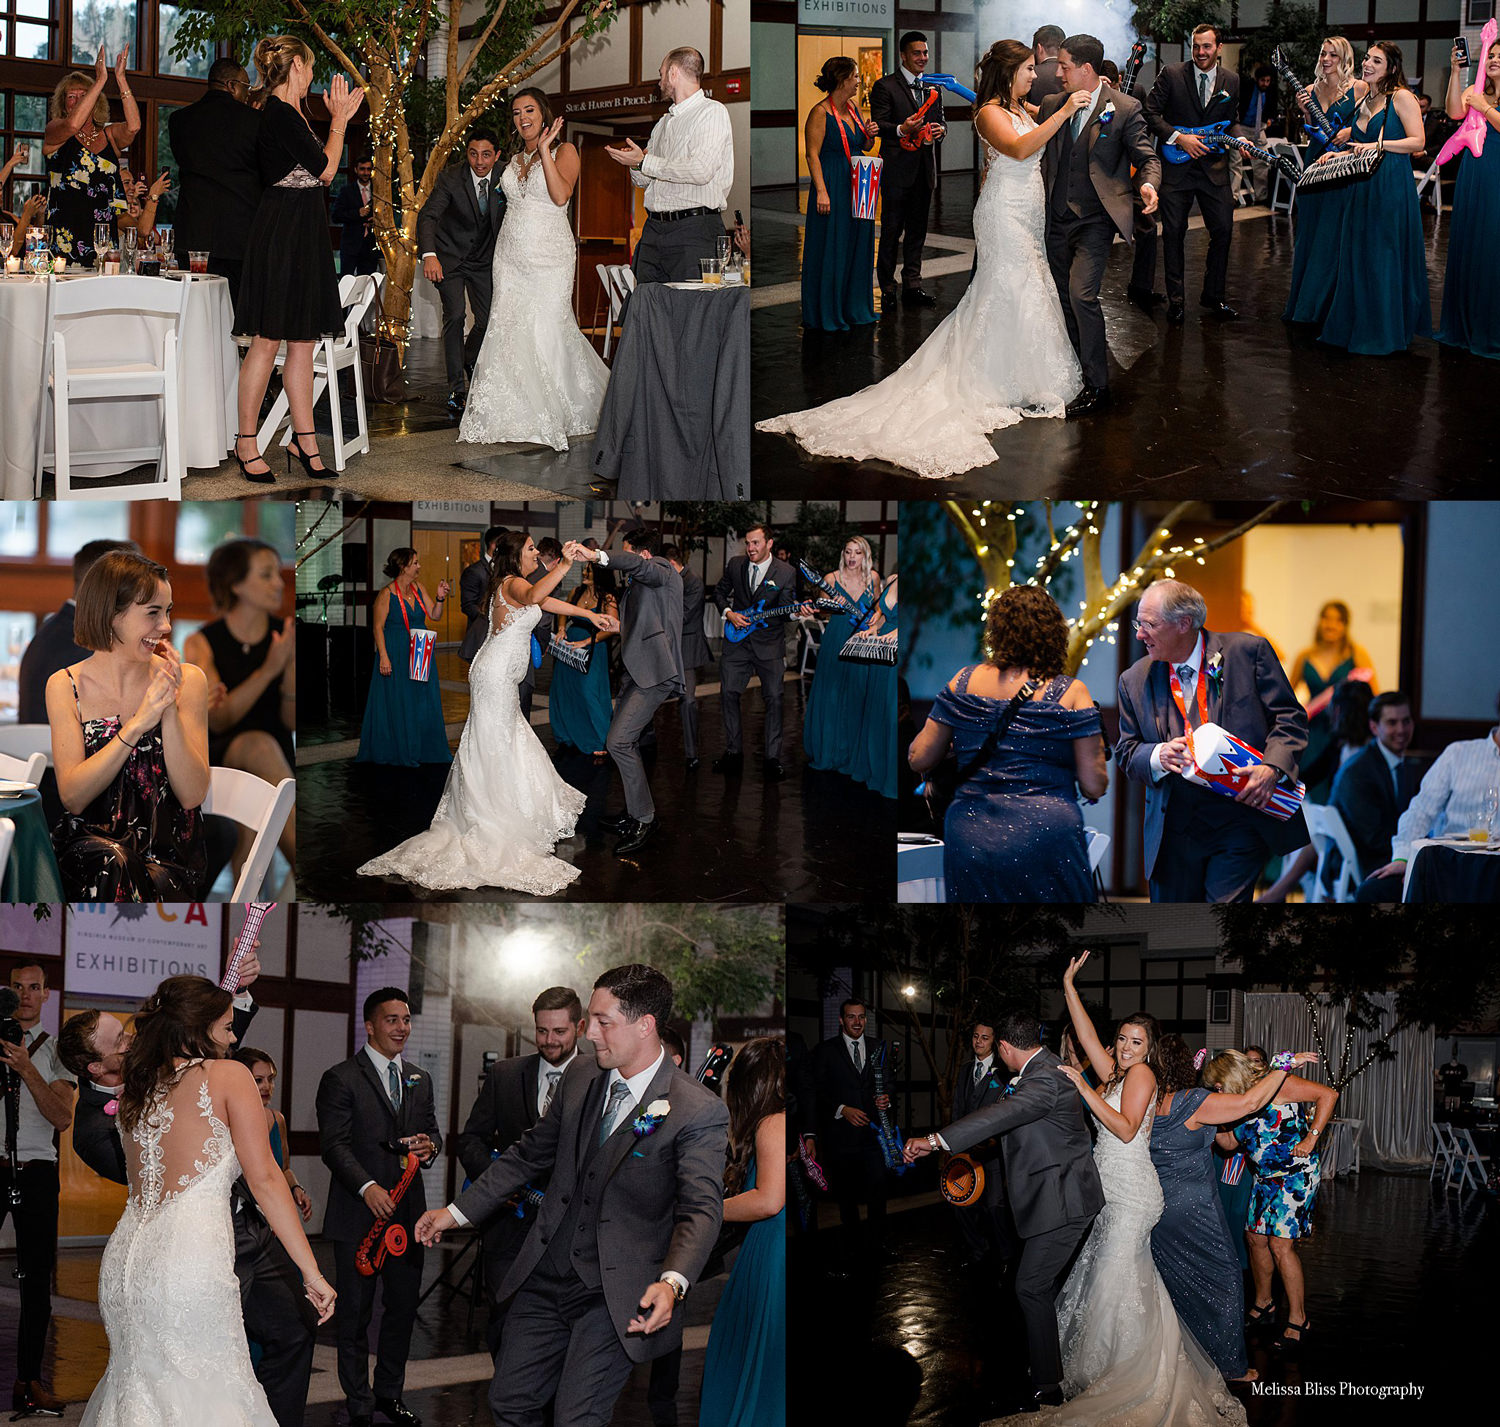 MOCA-virginia-beach-wedding-reception-photos-melissa-bliss-photography-VA_destination-wedding-photographer.jpg